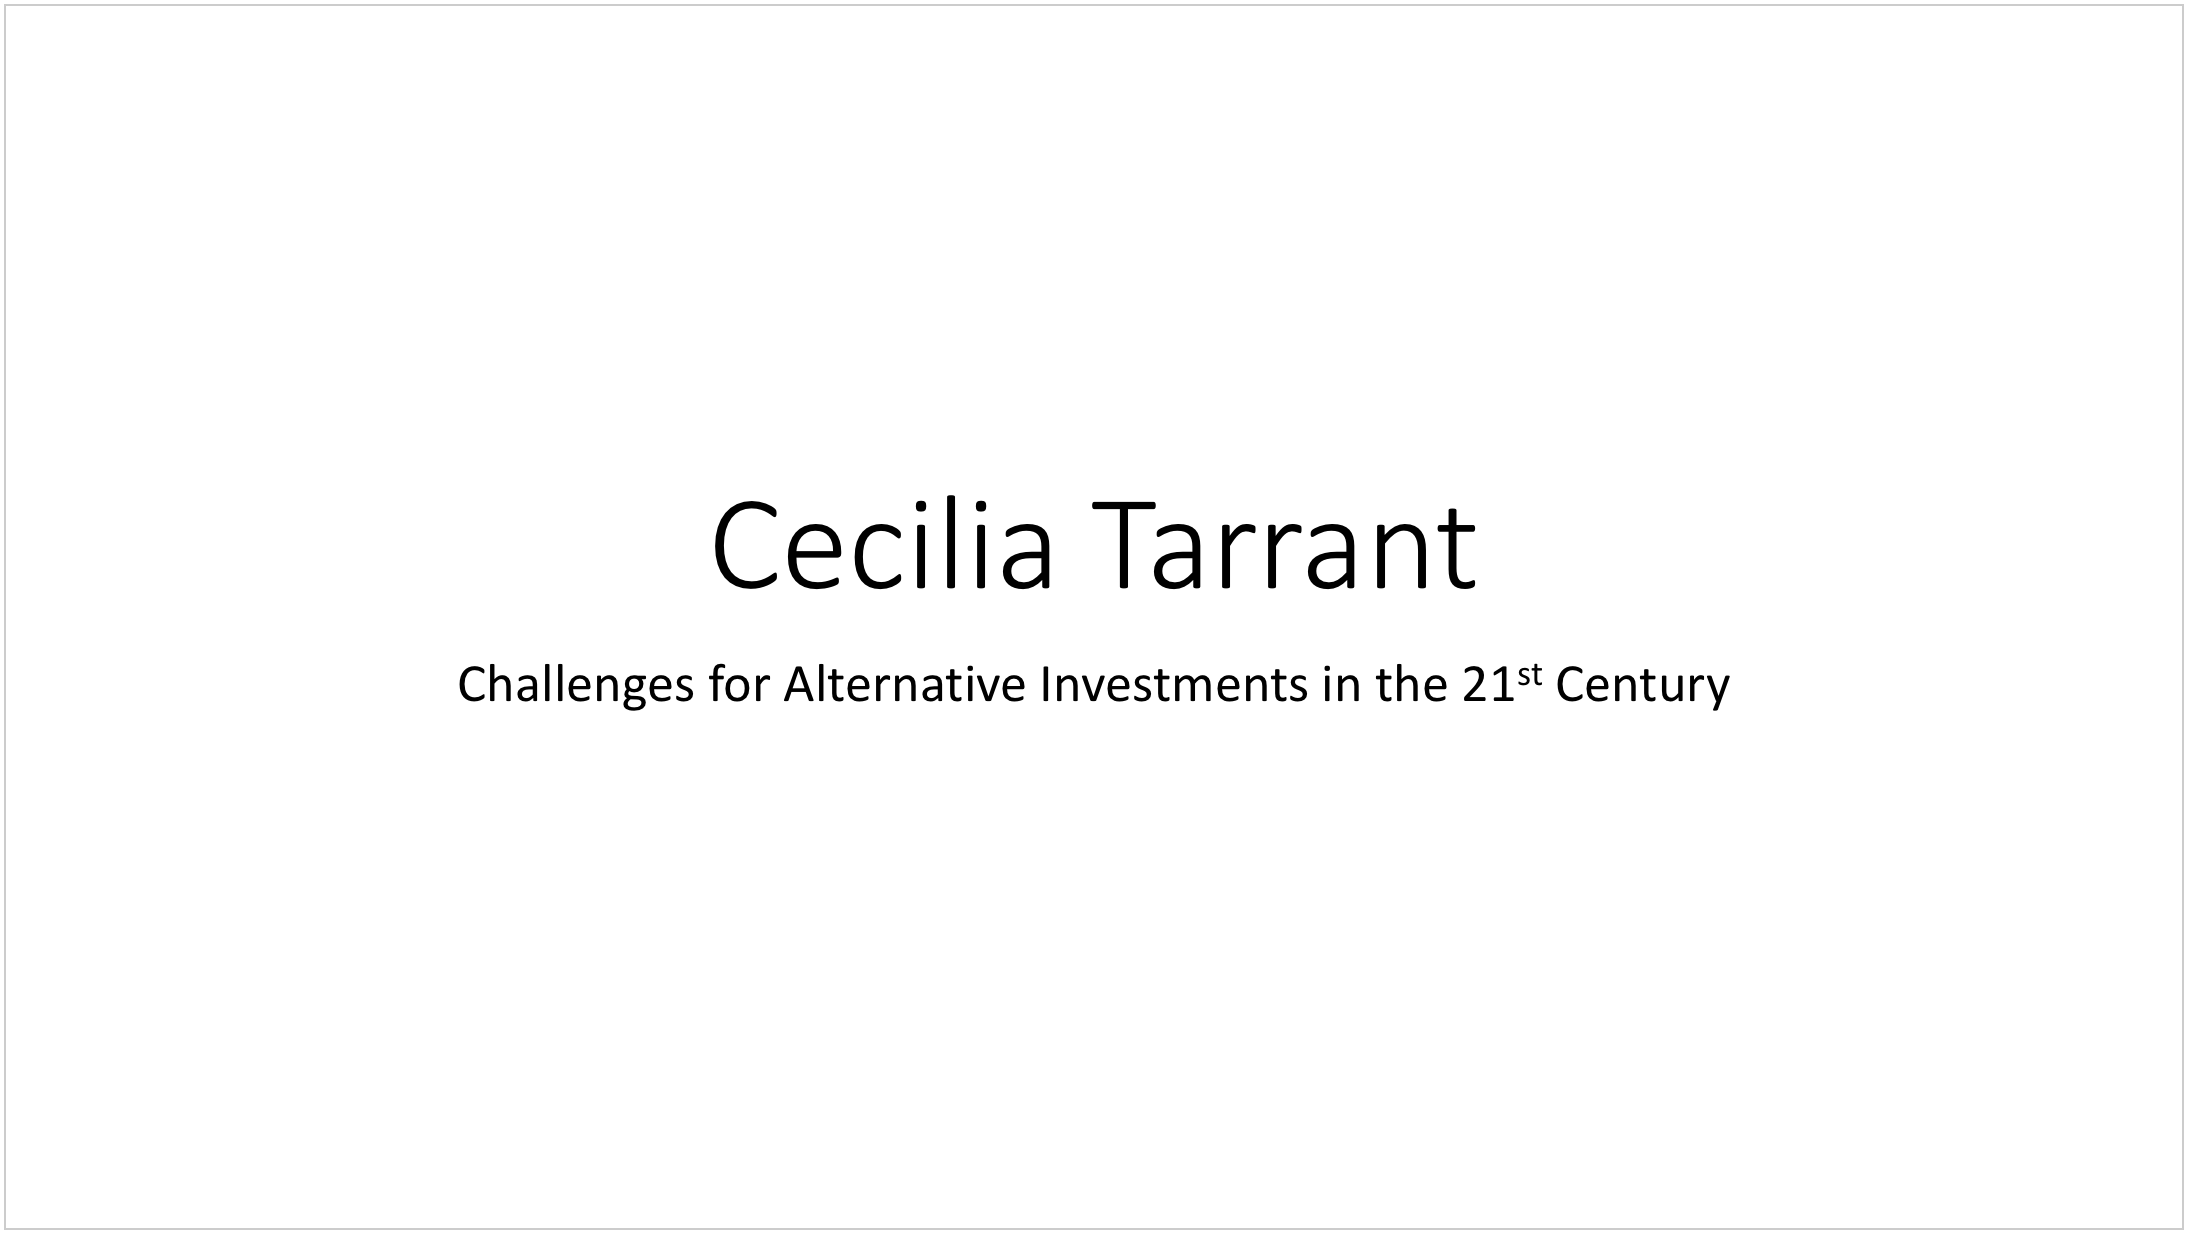 Challenges for Alternative Investments in the 21stCentury